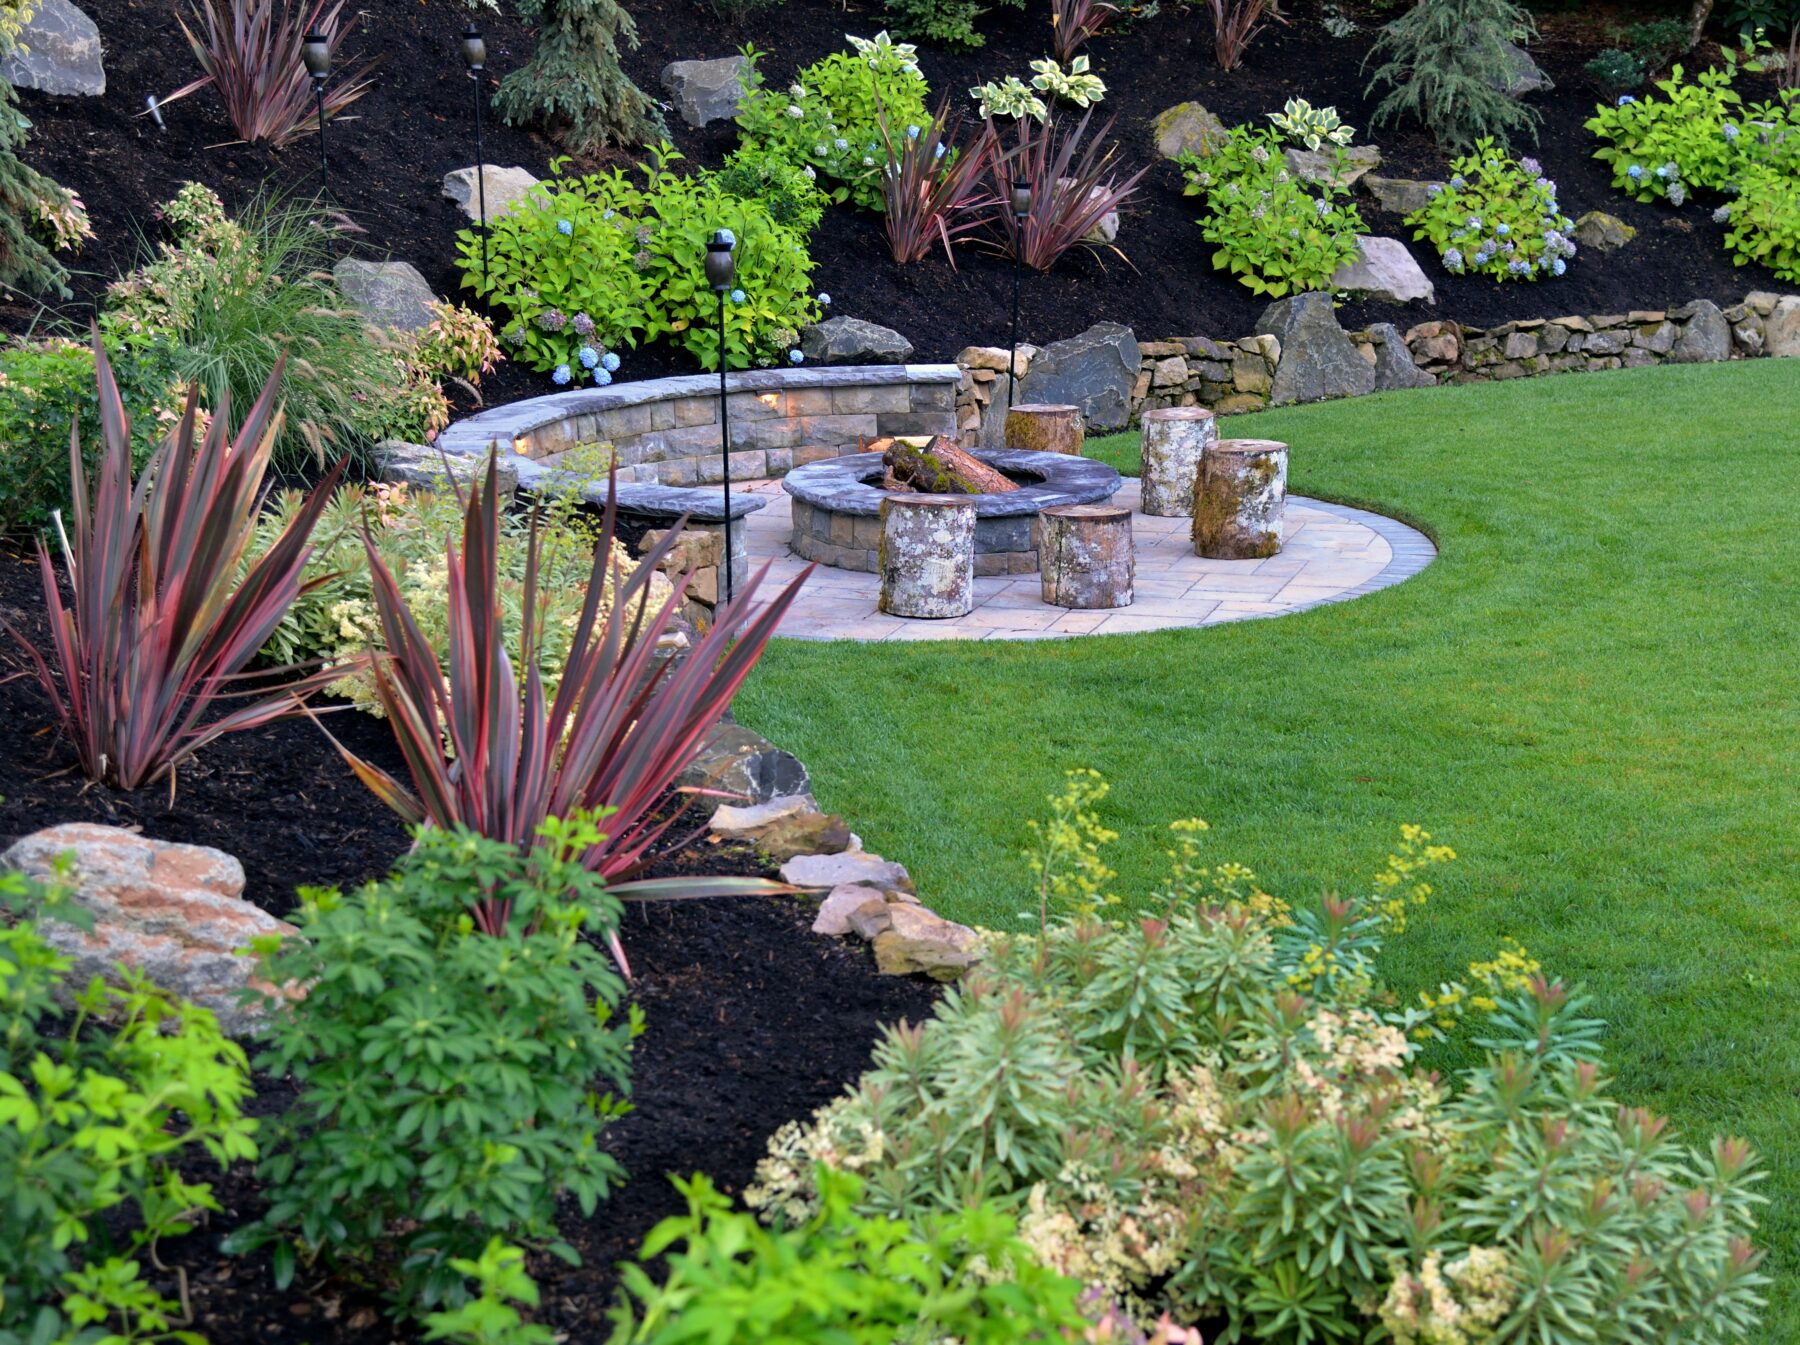 An example of Corbett landscape design and landscape construction work